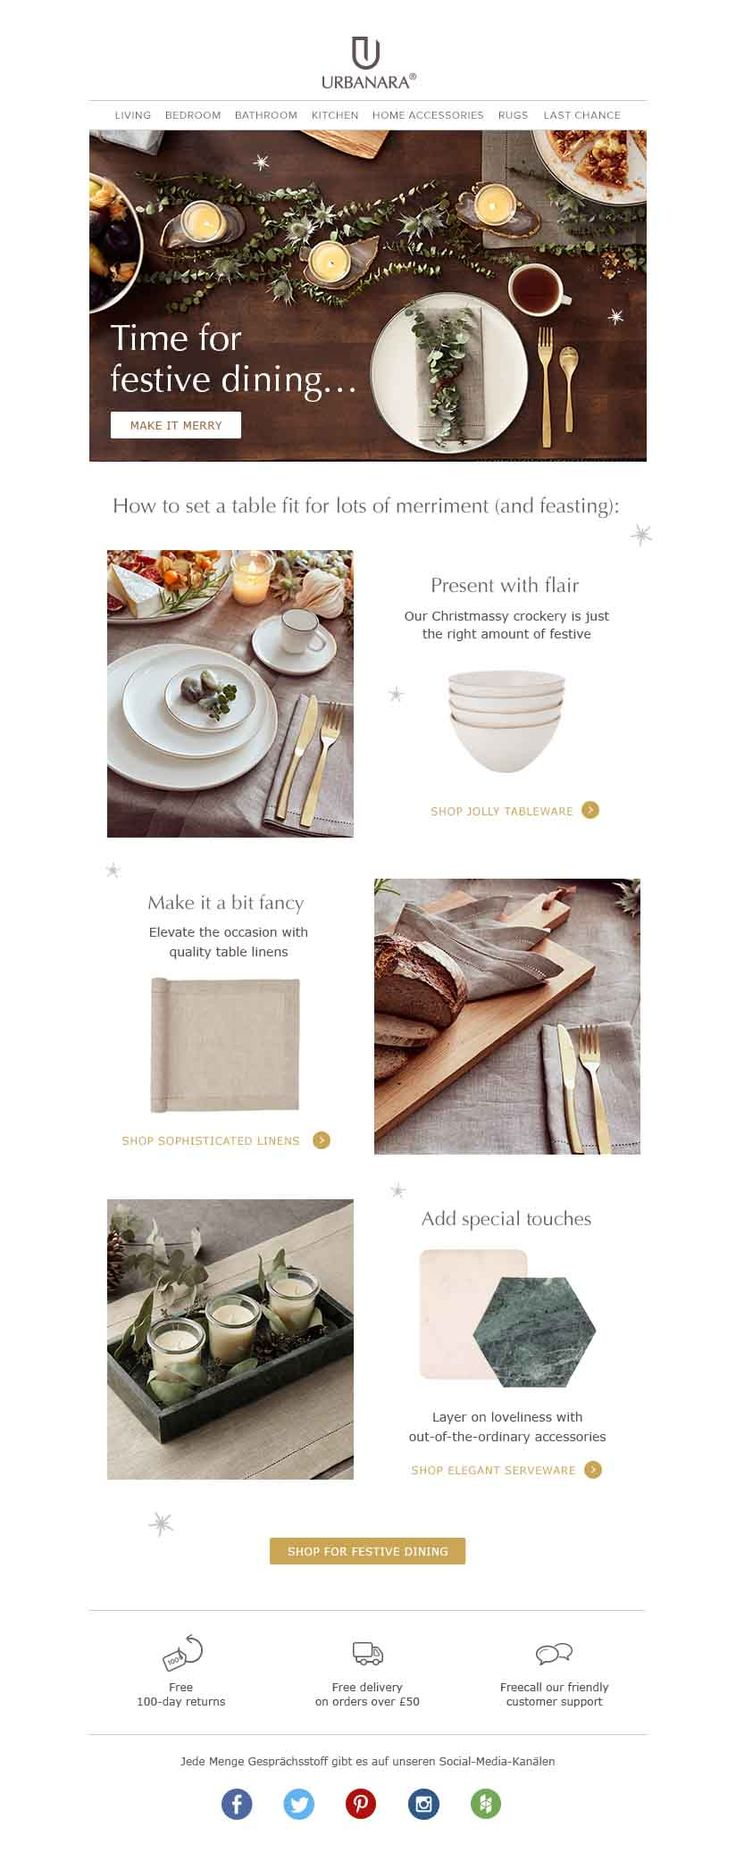 URBANARA newsletter template for Christmas festive dining and table setting.  Follows us for tips and inspiration for your home decor, interior or fashion newsletters.